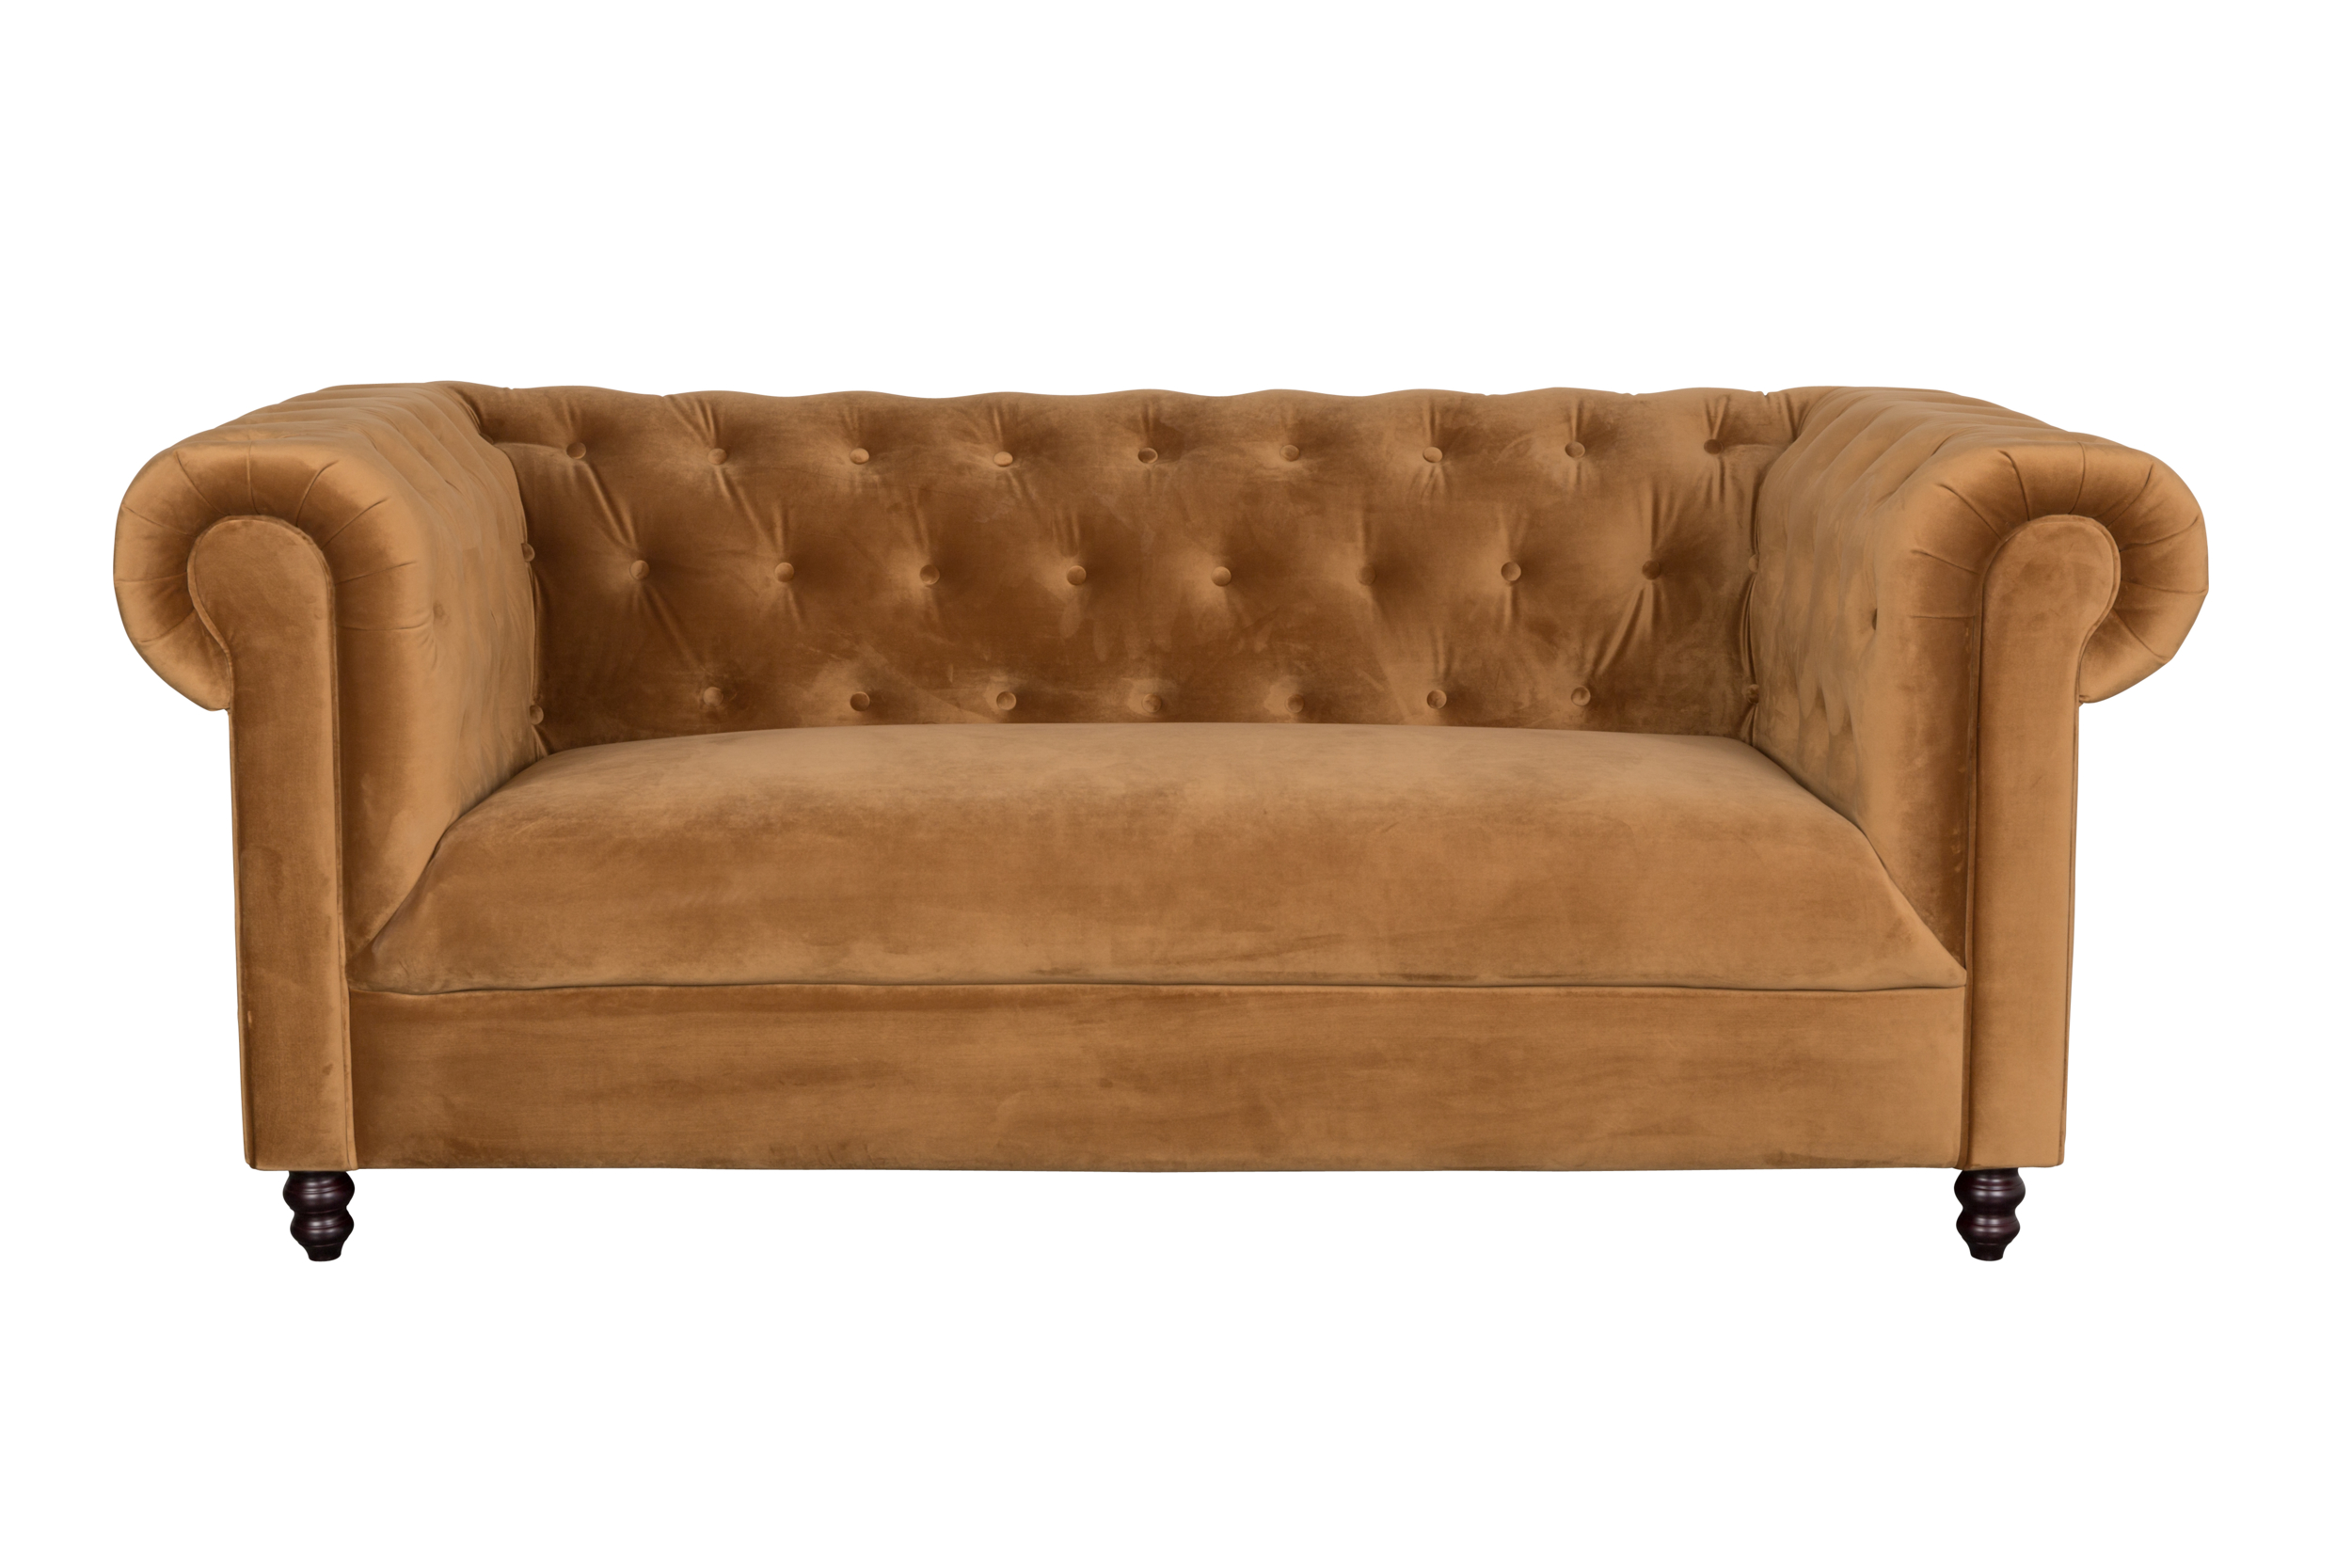 SOFA CHESTER GOLDEN BROWN